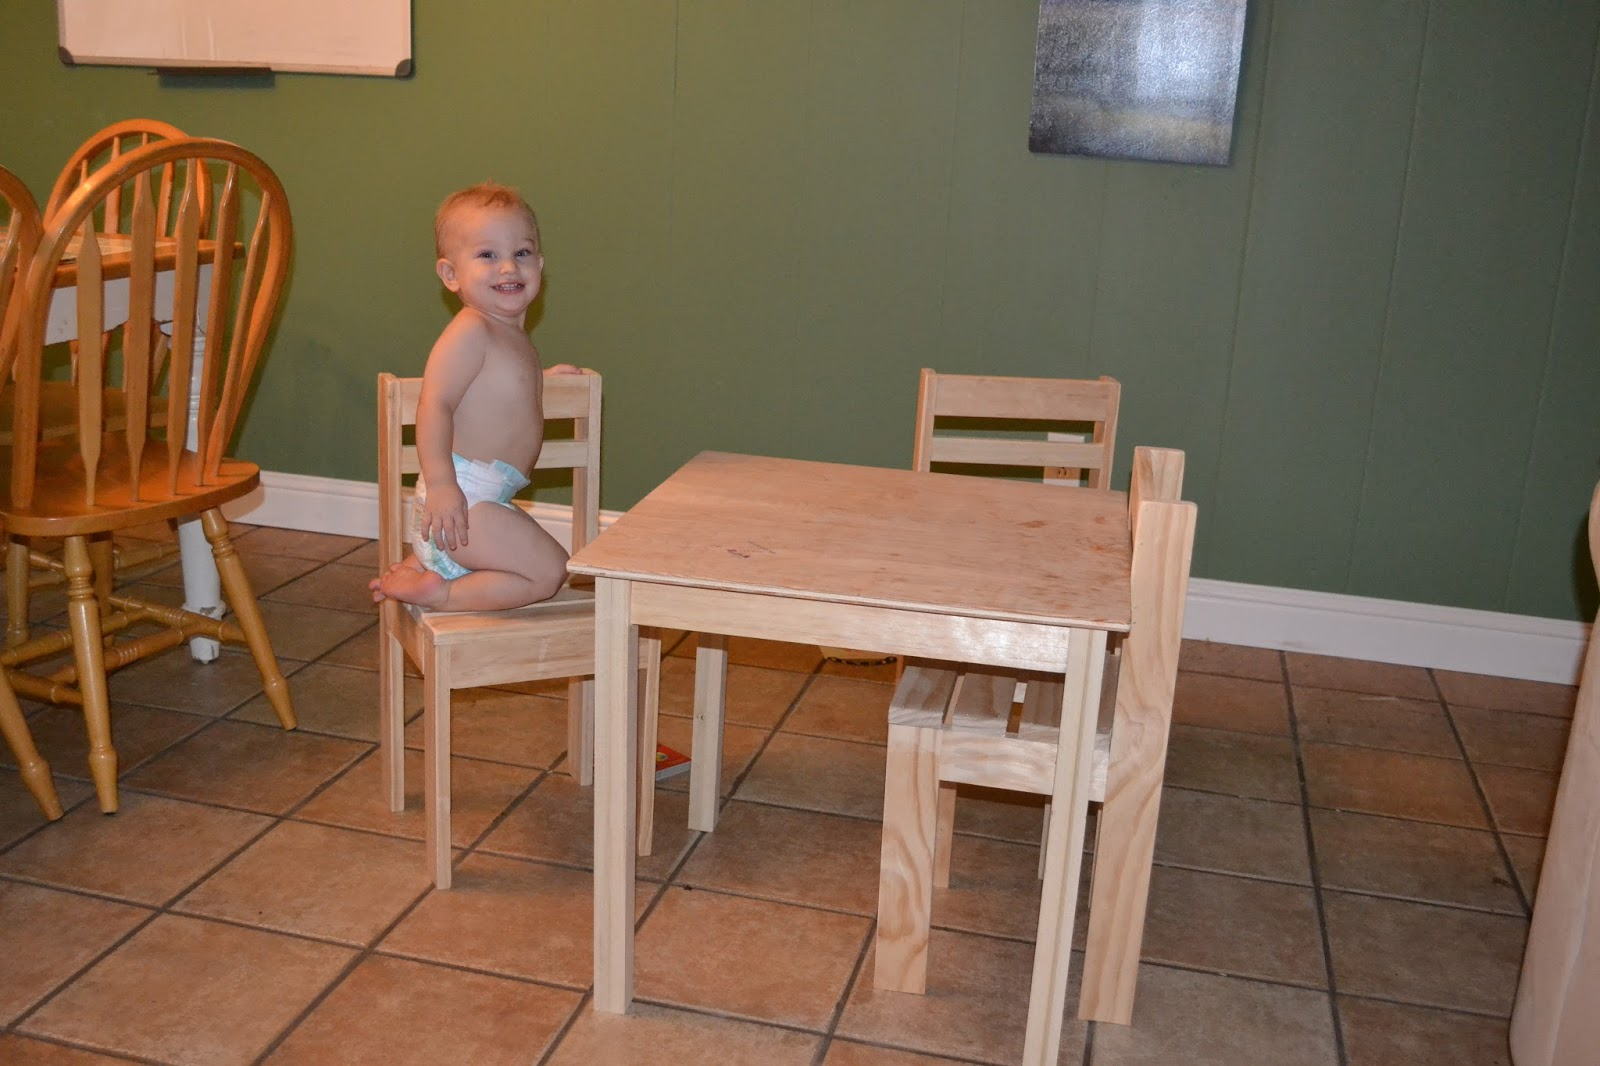 Diy Roman Chair Swivel Rocker Chairs All Things Gale Completed Homeschool Room And A Question